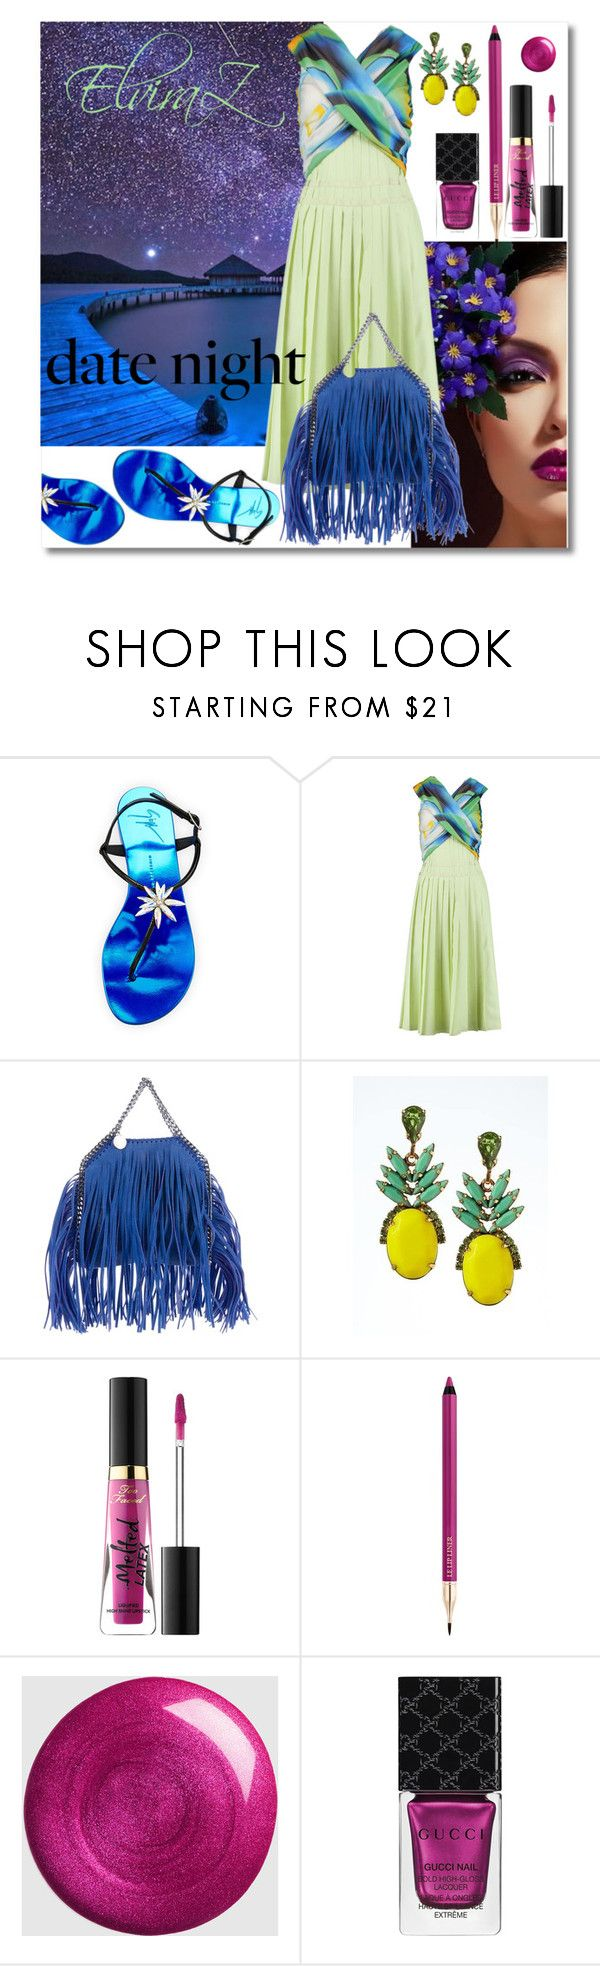 """""""Date Night"""" by elza76 ❤ liked on Polyvore featuring Giuseppe Zanotti, Vionnet, STELLA McCARTNEY, Banana Republic, Too Faced Cosmetics, Lancôme and Gucci"""